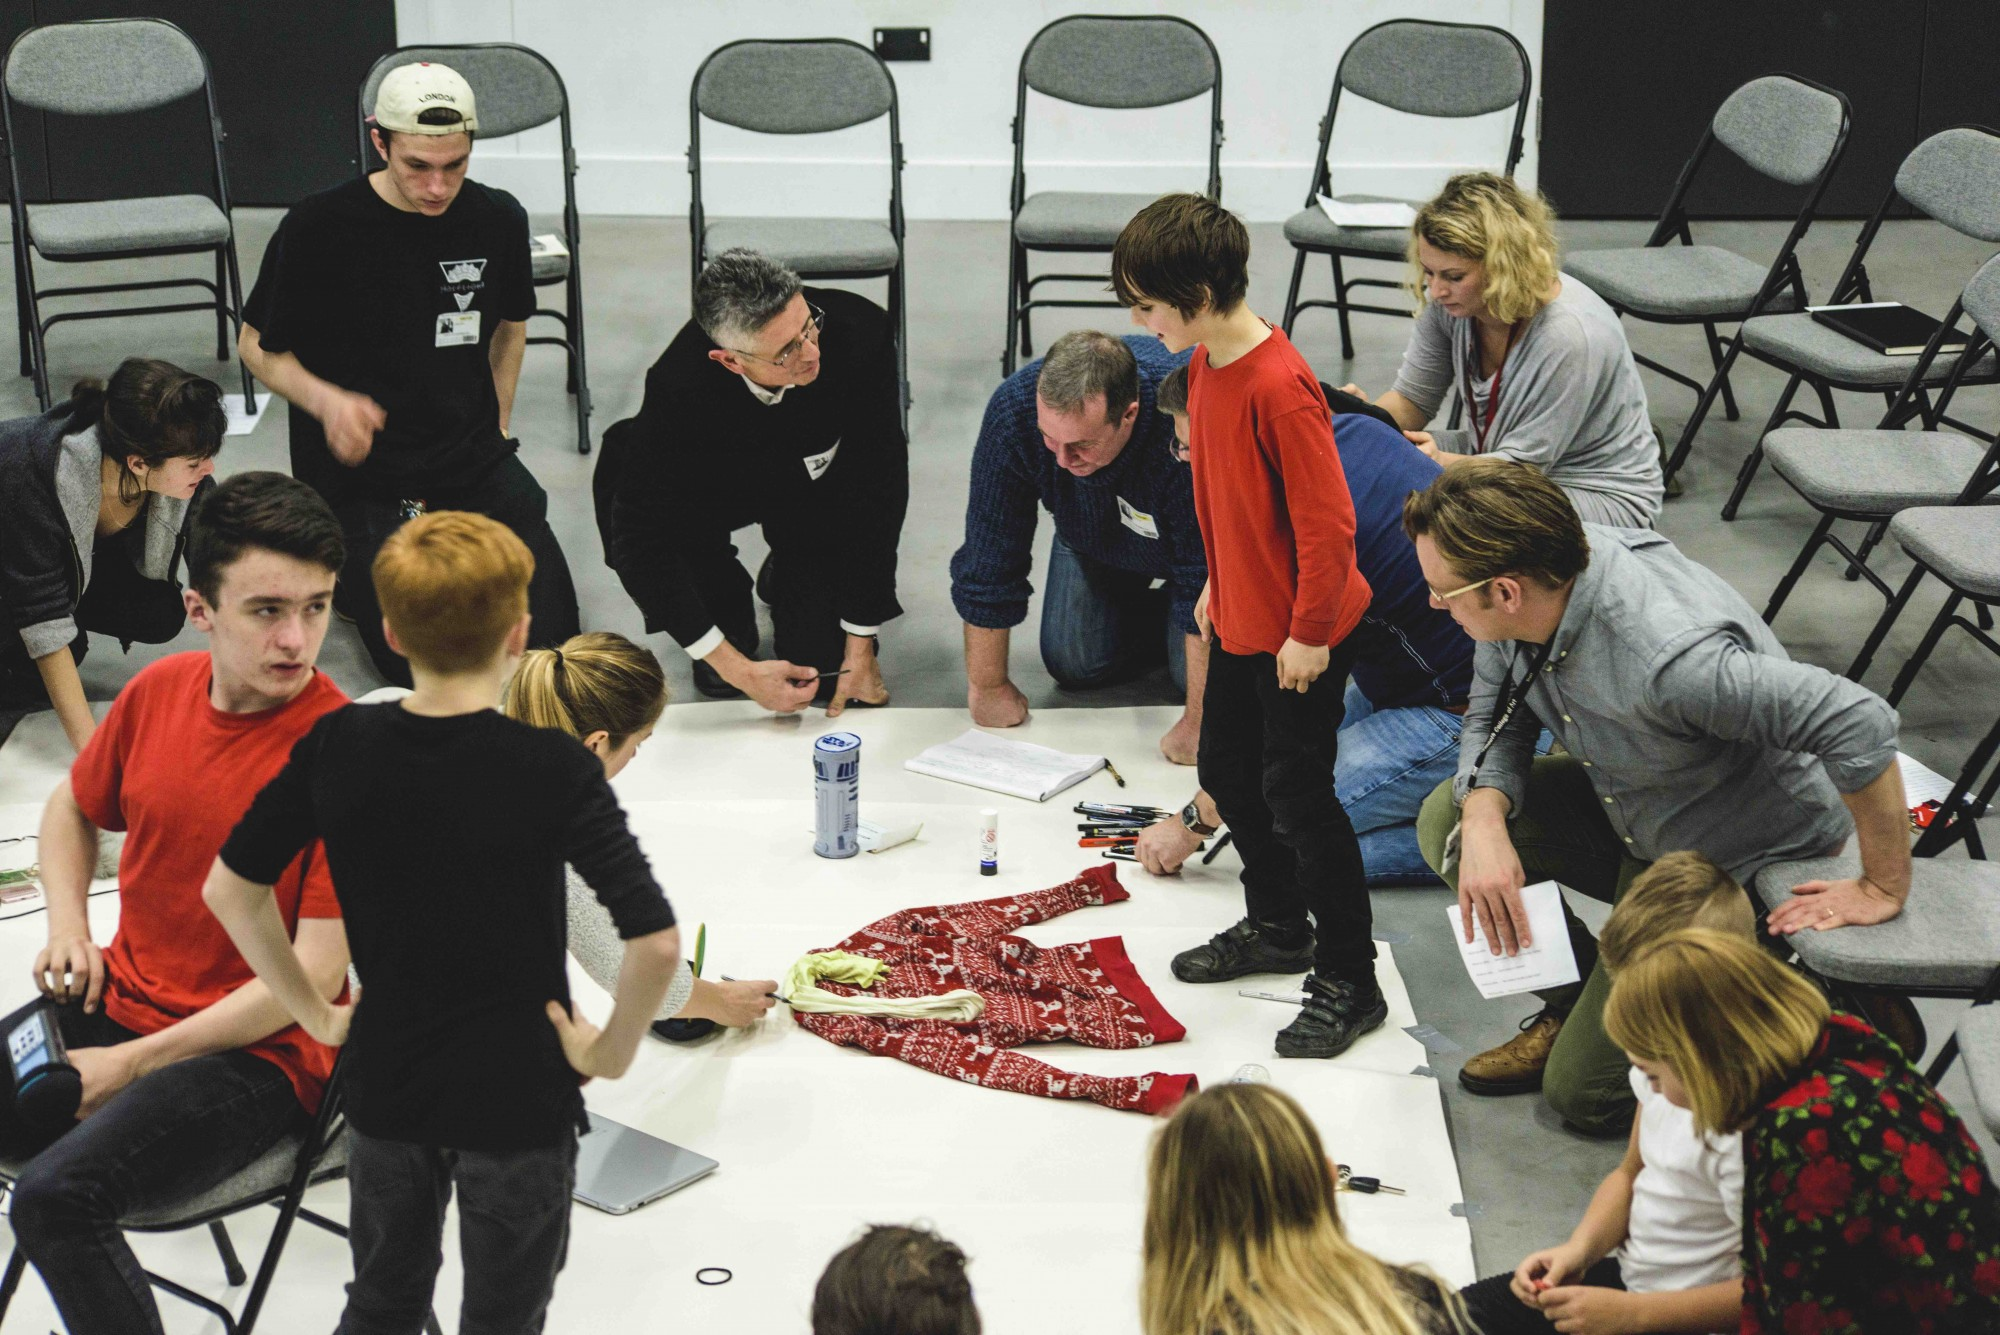 Making_Learning_-_Creative_continuum_students_prepare_for_Tate_Exchange_6_-_Photo_by_Sarah_Packer.jpg